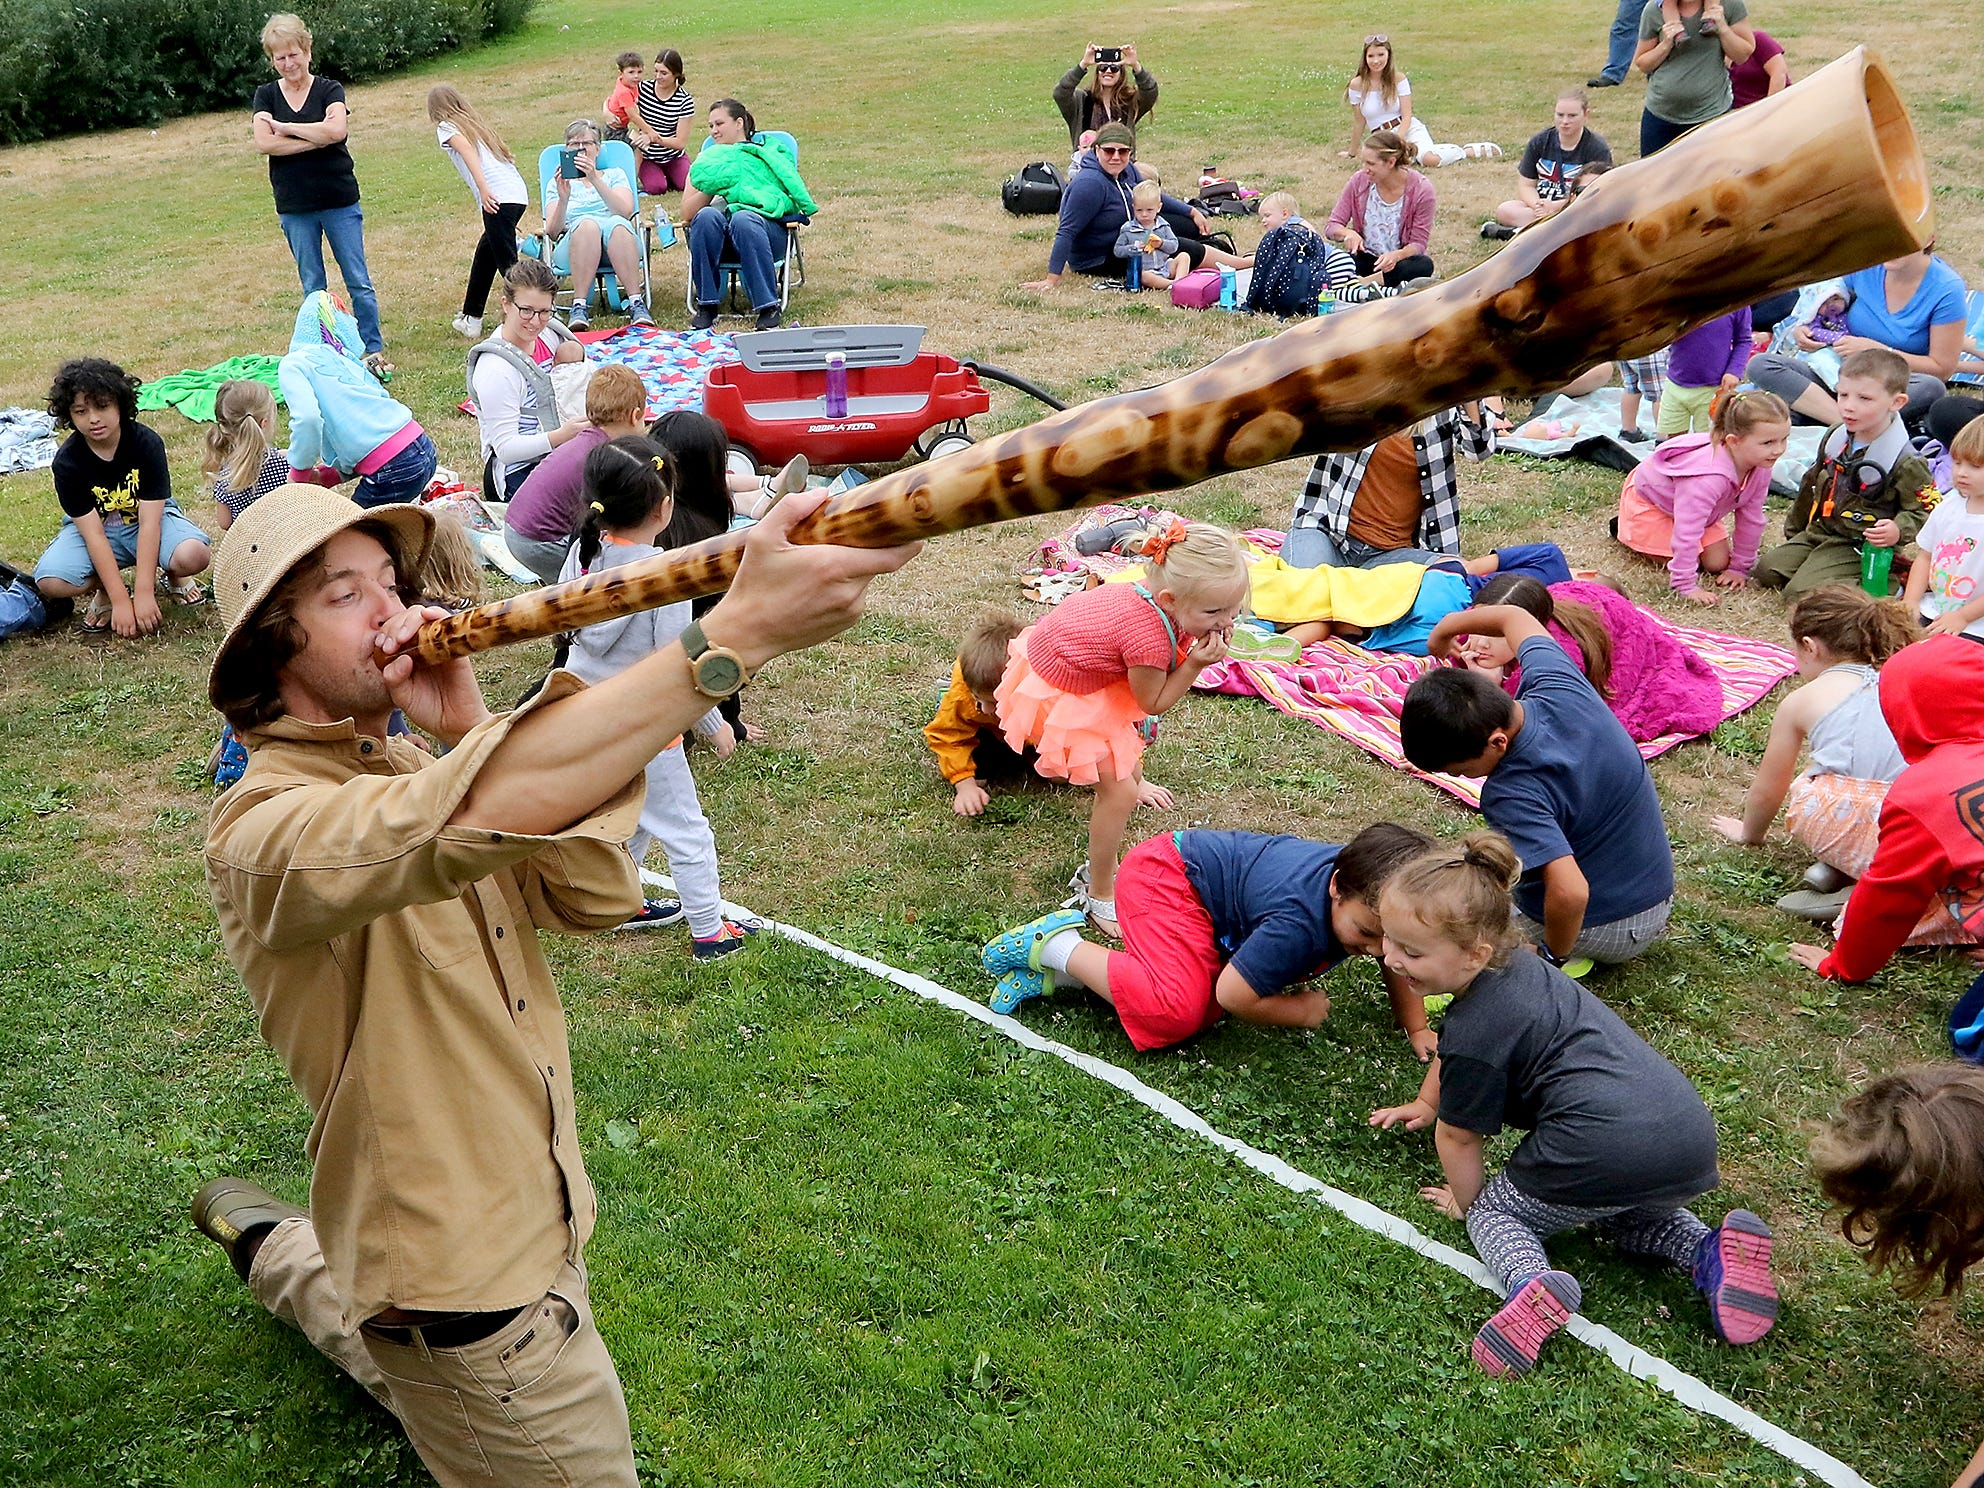 Youngsters spin around and play the part of Australian animals while William Thoren plays the didgeridoo as part of his Didgeridoo Down Under presentation for those gathered at Blueberry Park in Bremerton on Tuesday, July 31, 2018. The program was sponsored by the Kitsap Regional Library.